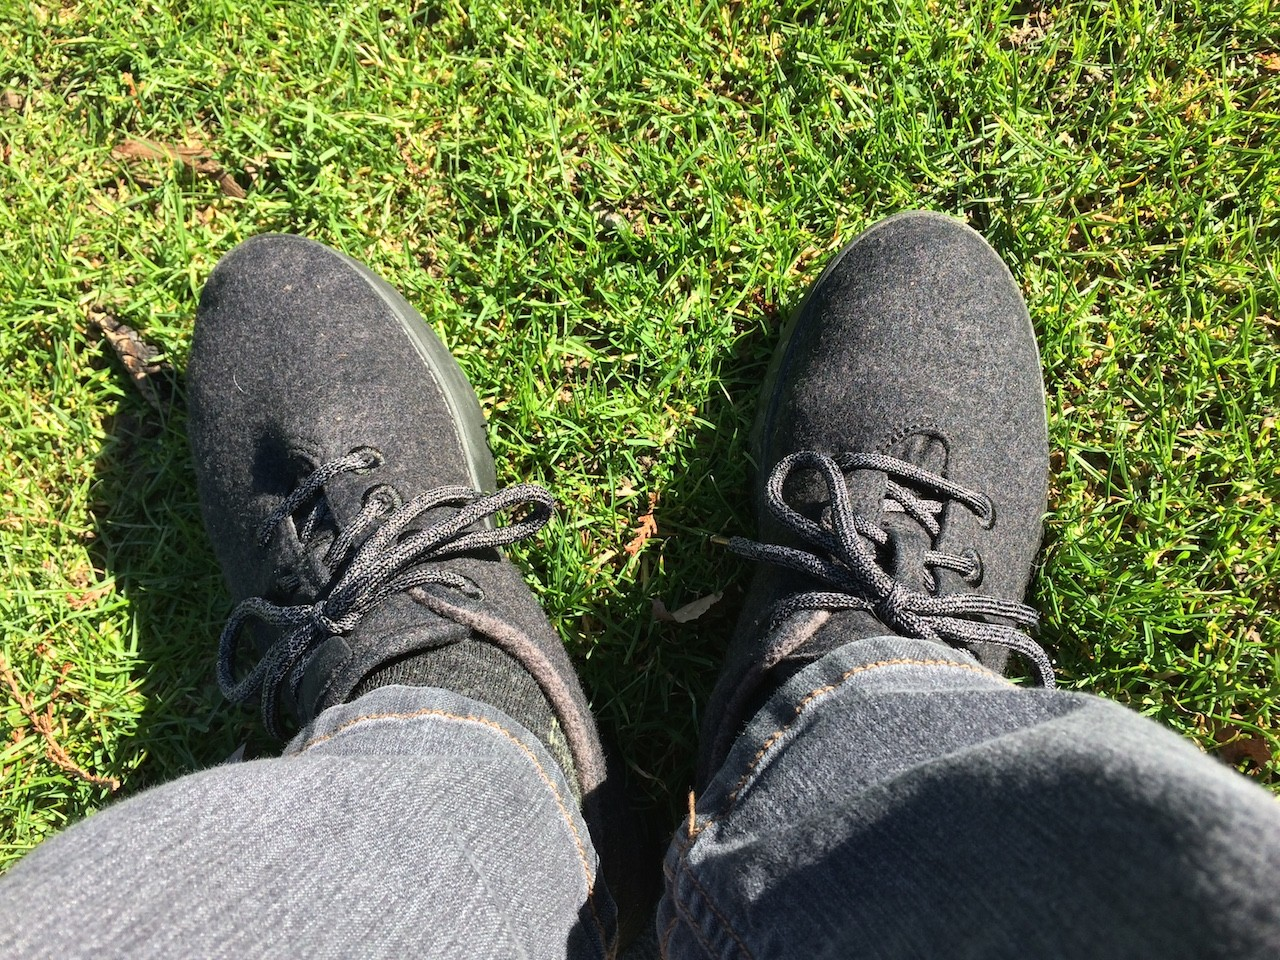 Allbirds lounging in the sun